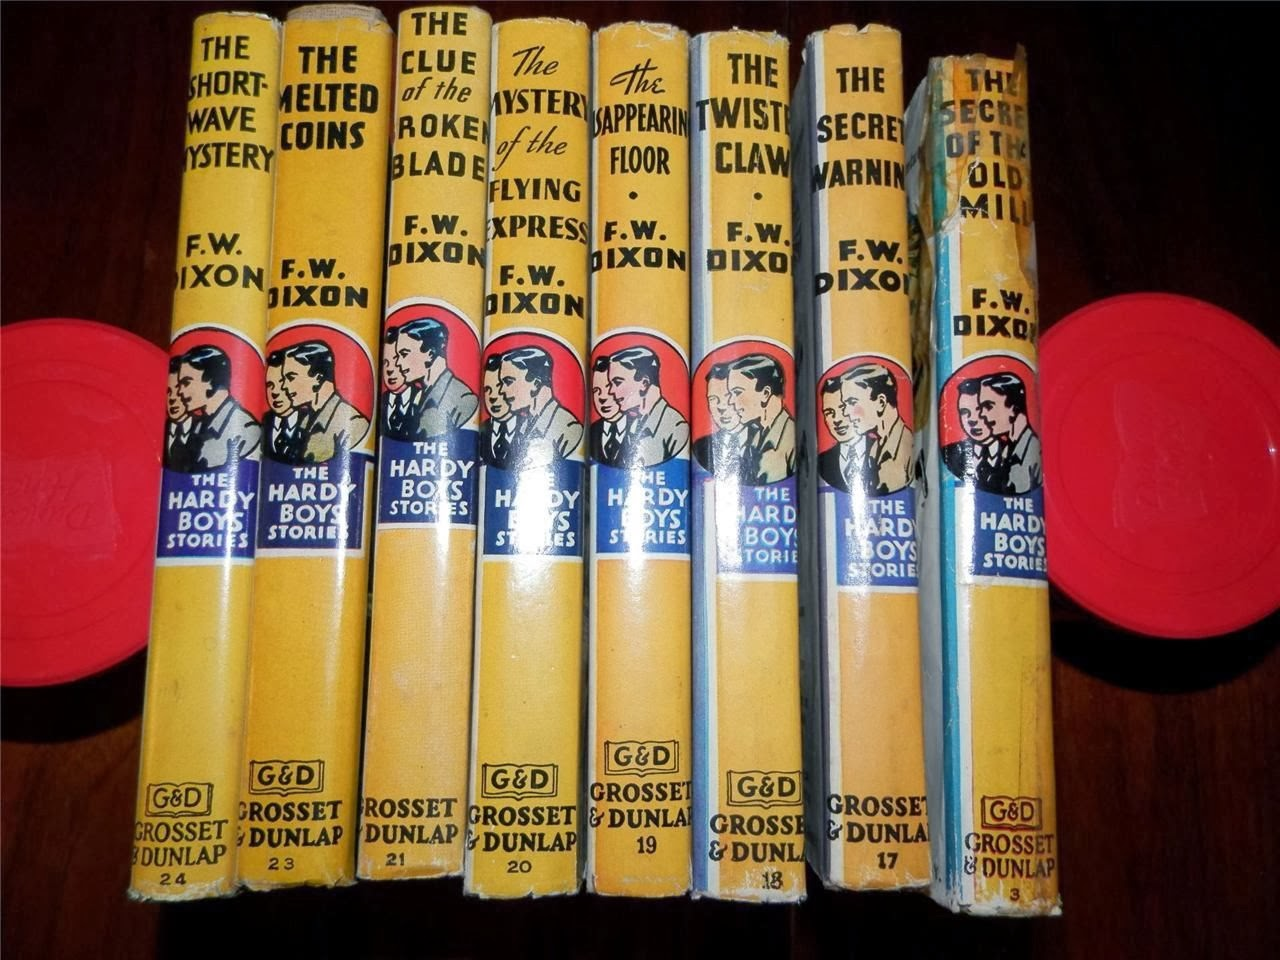 Lot of 13 books: HARDY BOYS adventure Series by FRANKLIN Dixon Hardcovers